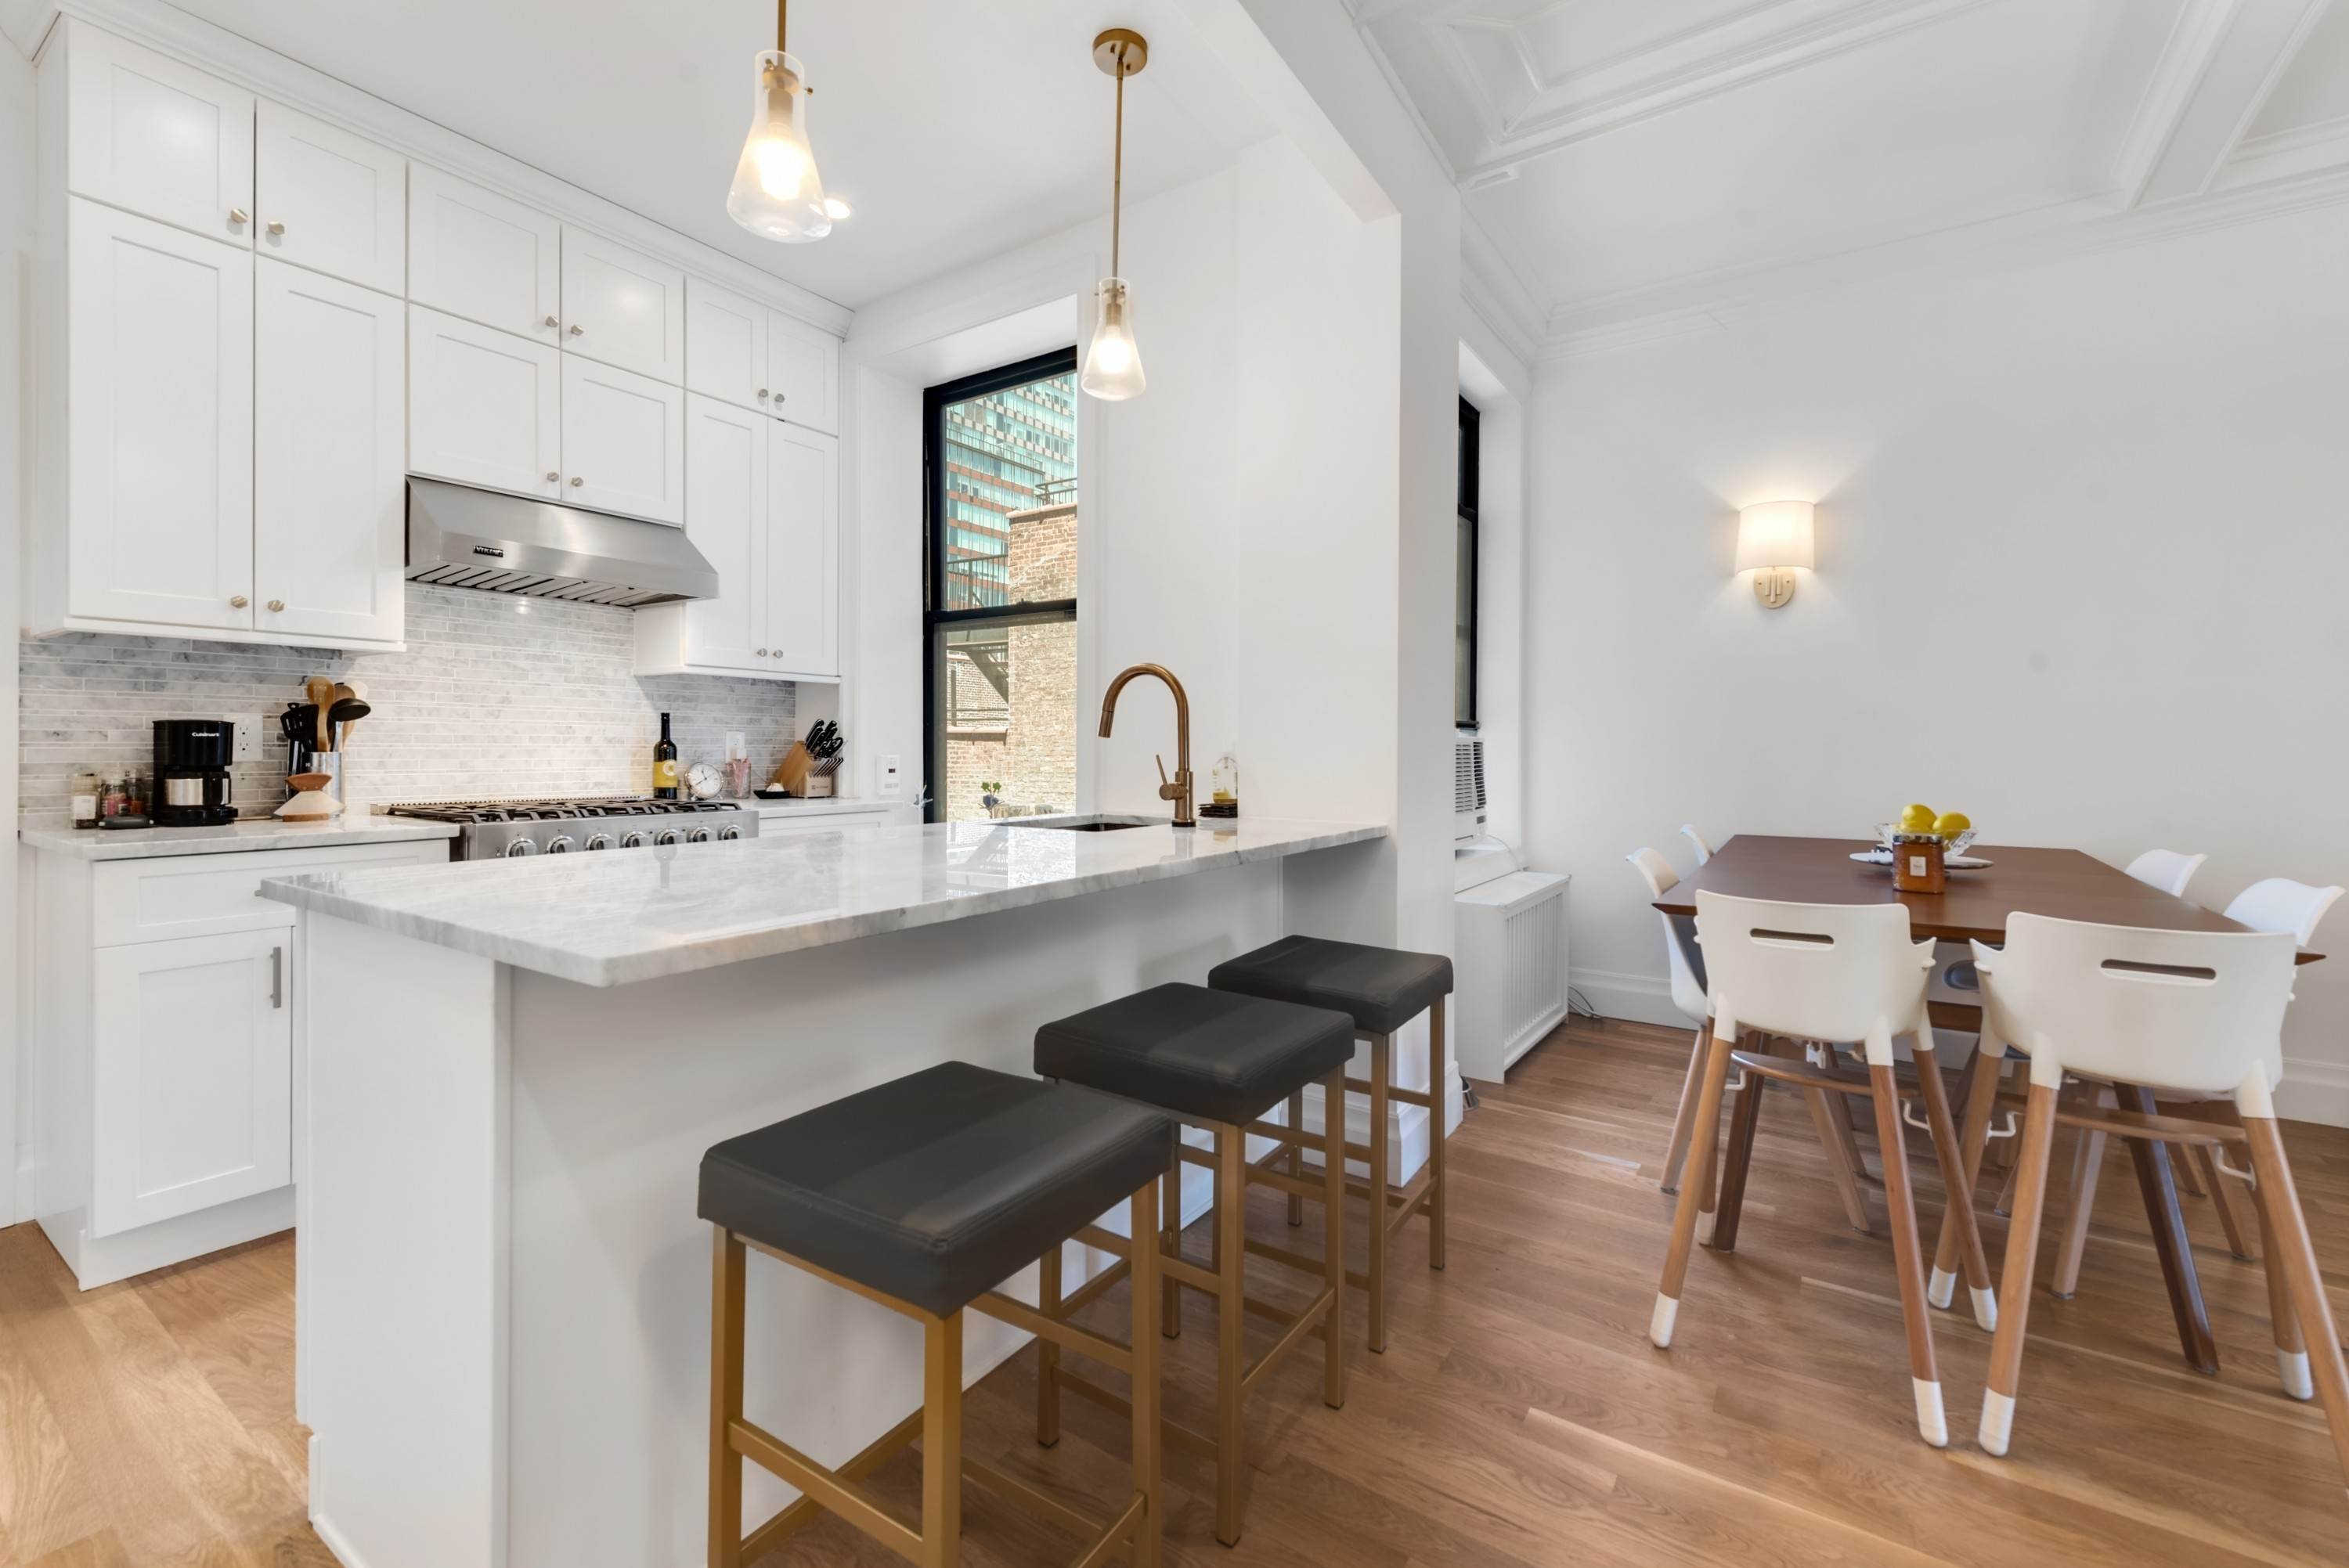 Co-op property vì Bán tại The Gramont 215 West 98th Street, 9F, New York, New York,10025 Hoa Kỳ